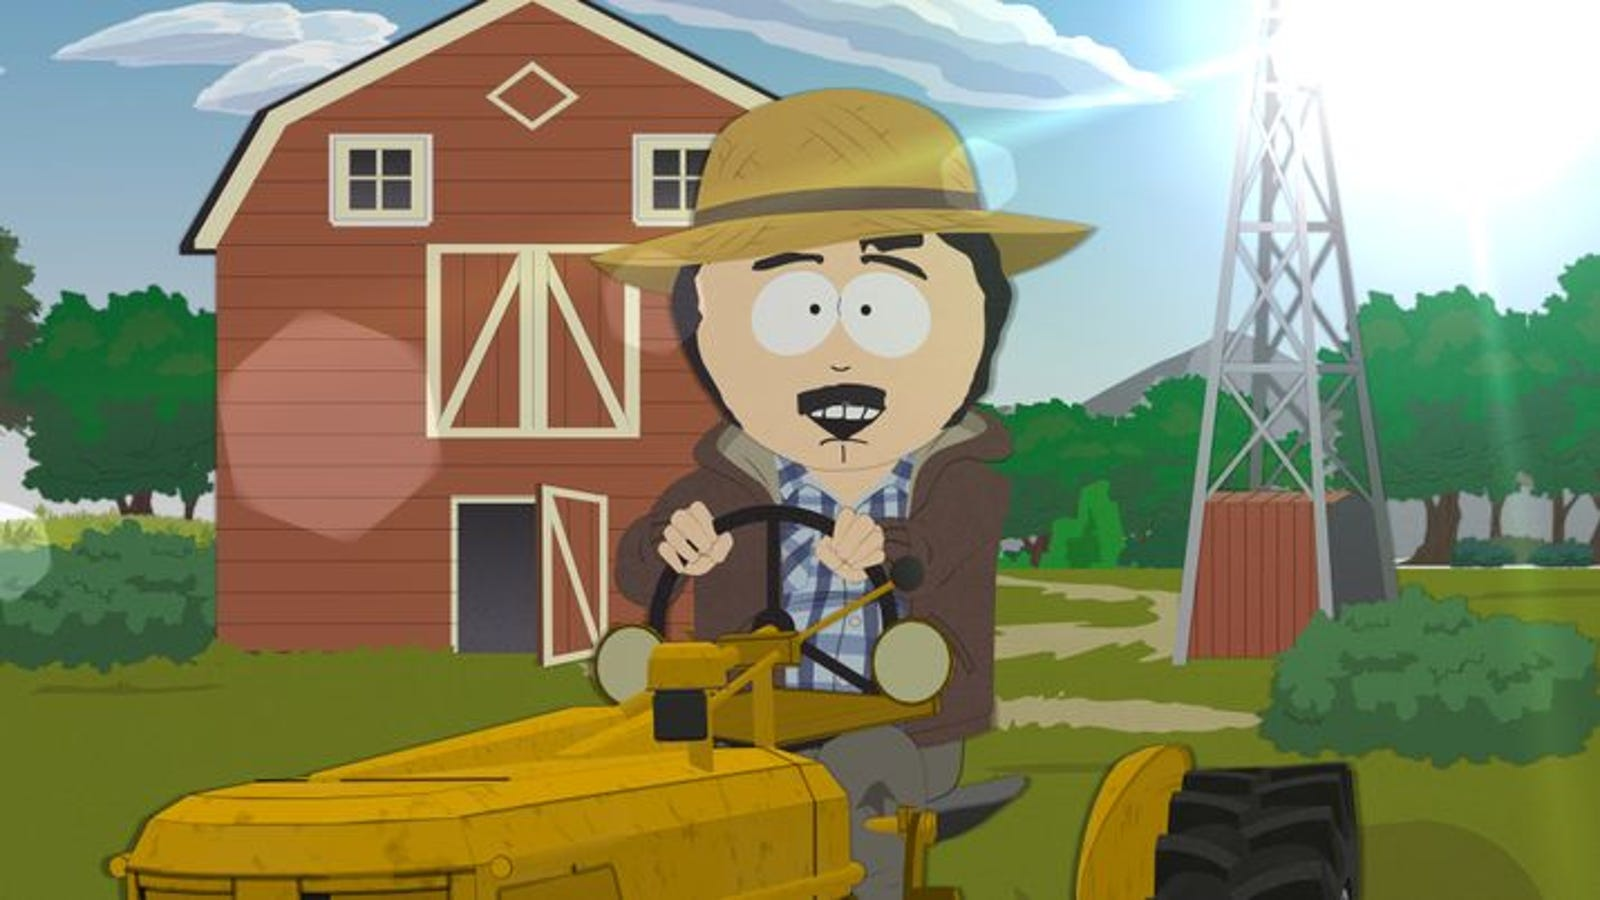 South Park takes on vape culture in one of its funniest episodes in years